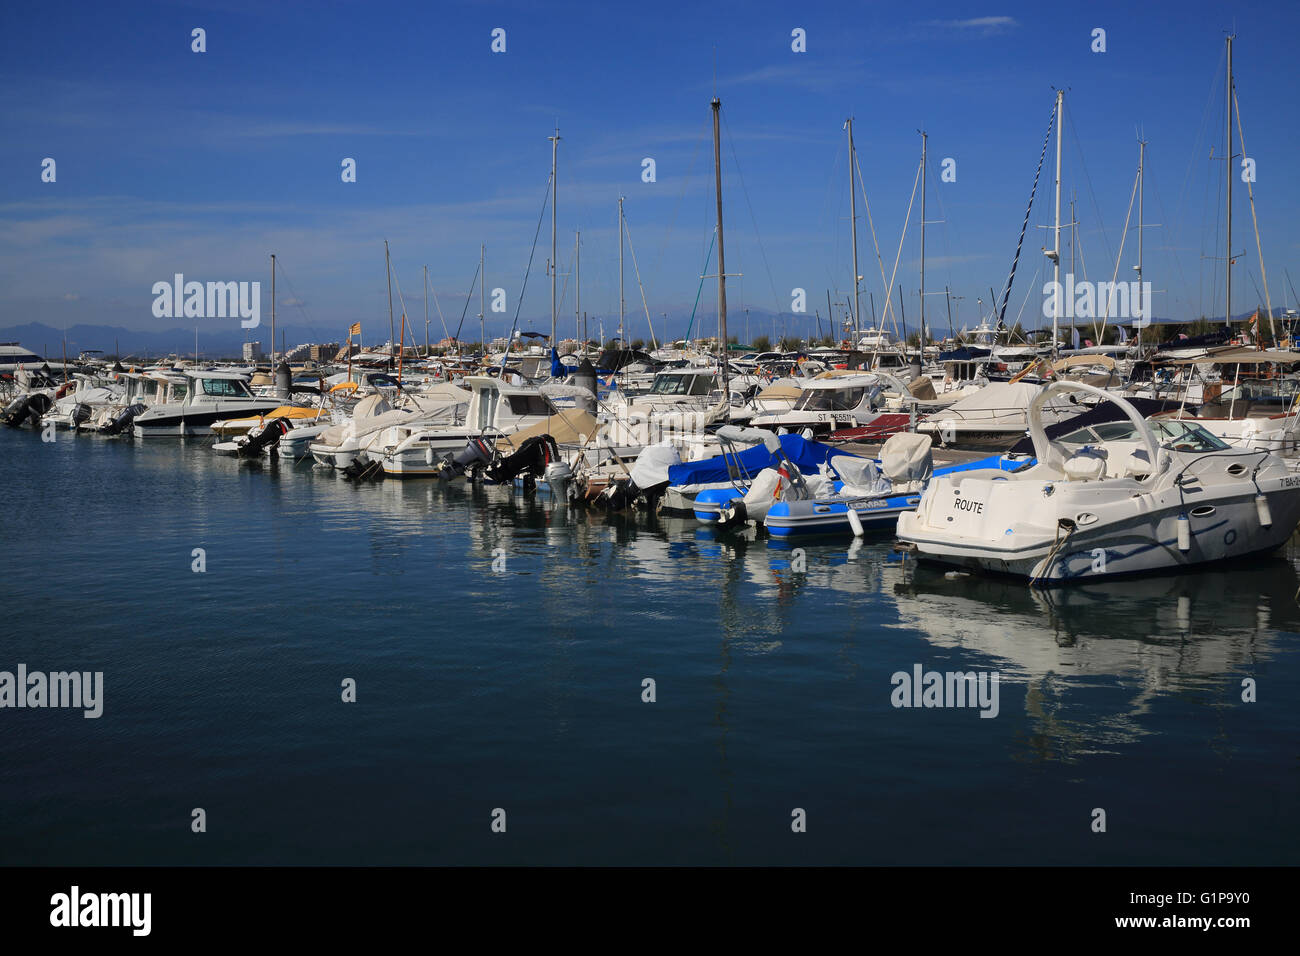 The pretty marina in the coastal town of Roses, in the province of Girona, in Catalonia, on the the Costa Brava, - Stock Image